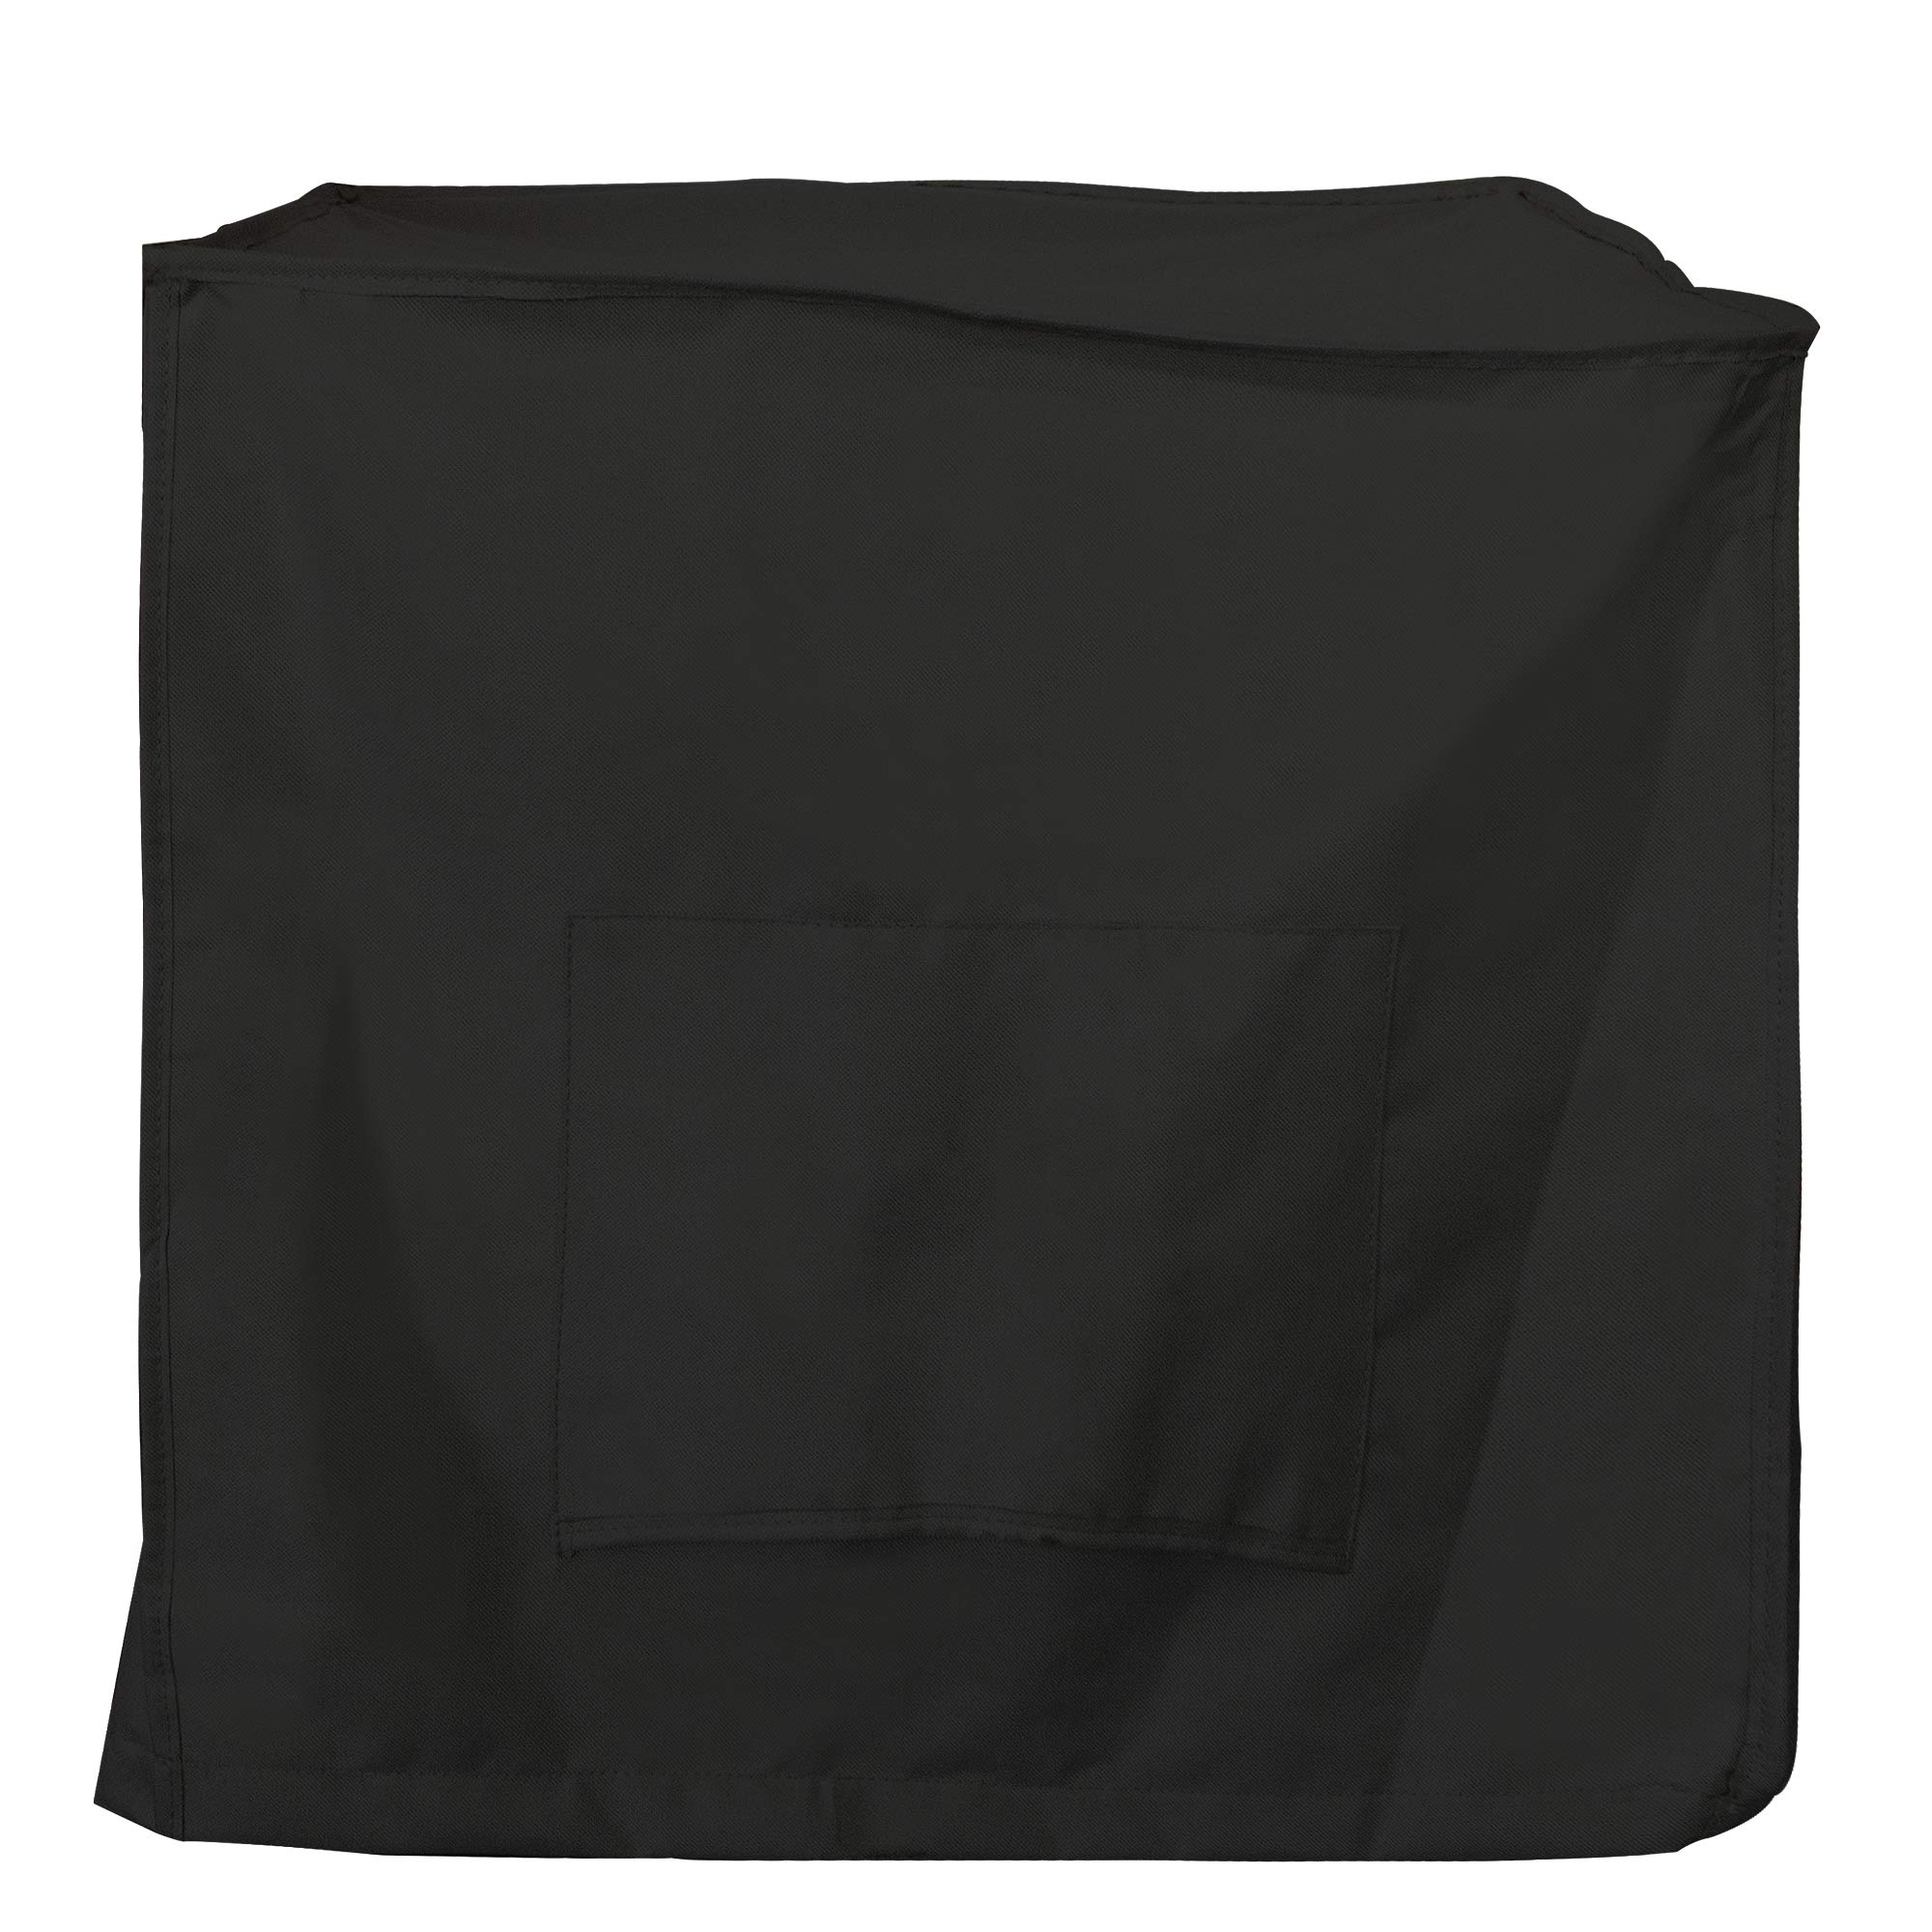 NEXTCOVER Universal Generator Cover-600D Canvas Heavy Duty Waterproof Fade Resistant,Fits Generator Up to 38'' Long and 28'' Wide and 30'' High,Black Color,N21G810C by NEXTCOVER (Image #5)